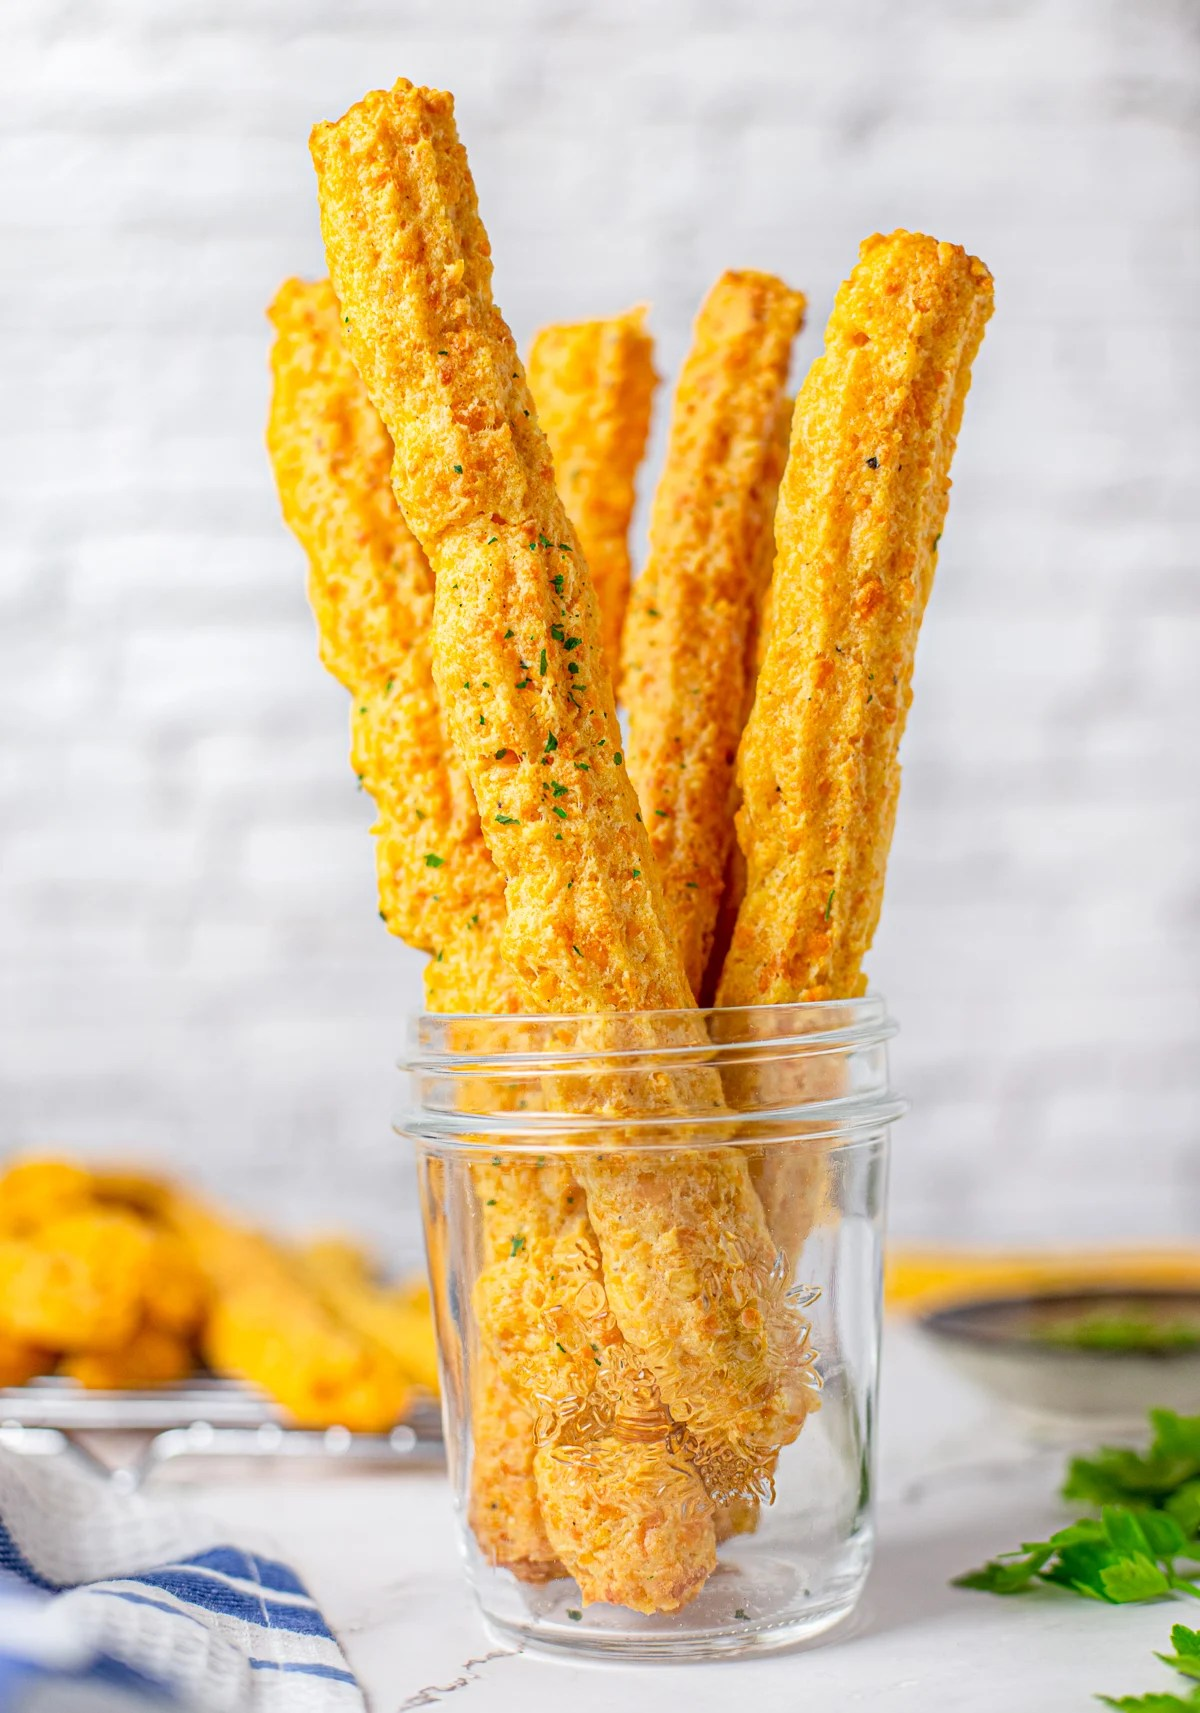 Cheese Straws in glass jar